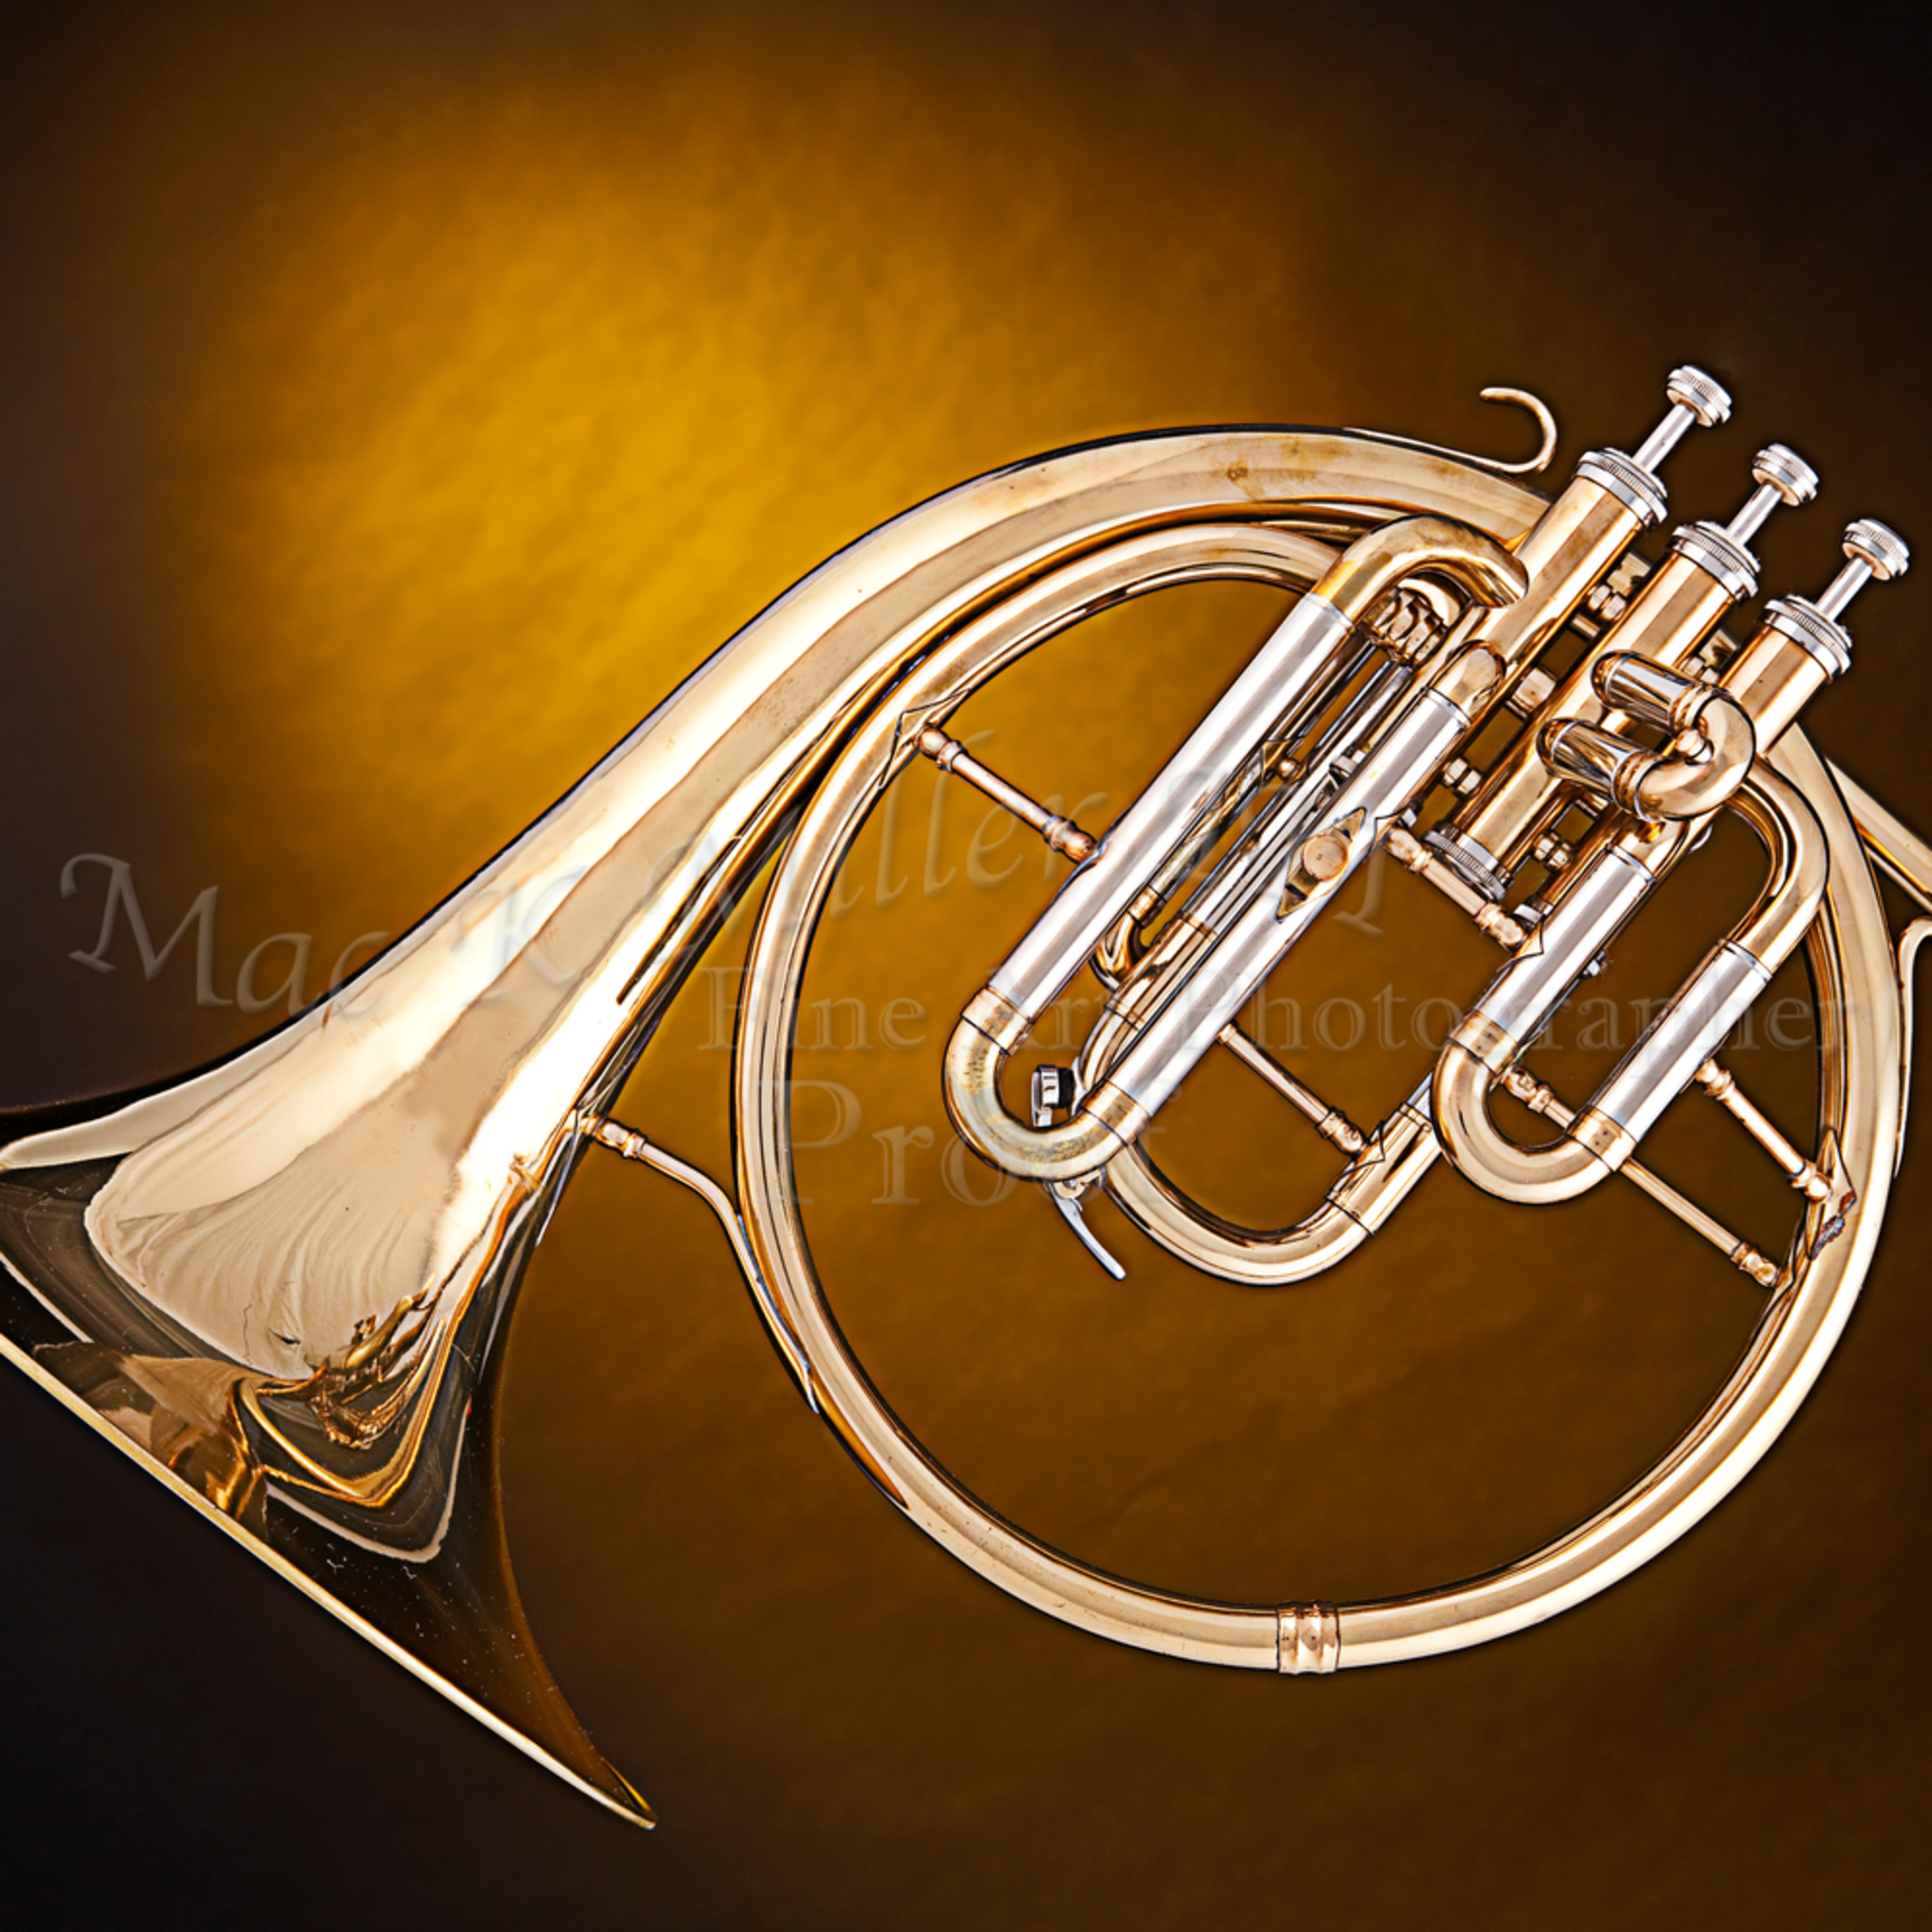 Antique french horn on gold 2079. 02 rpposj